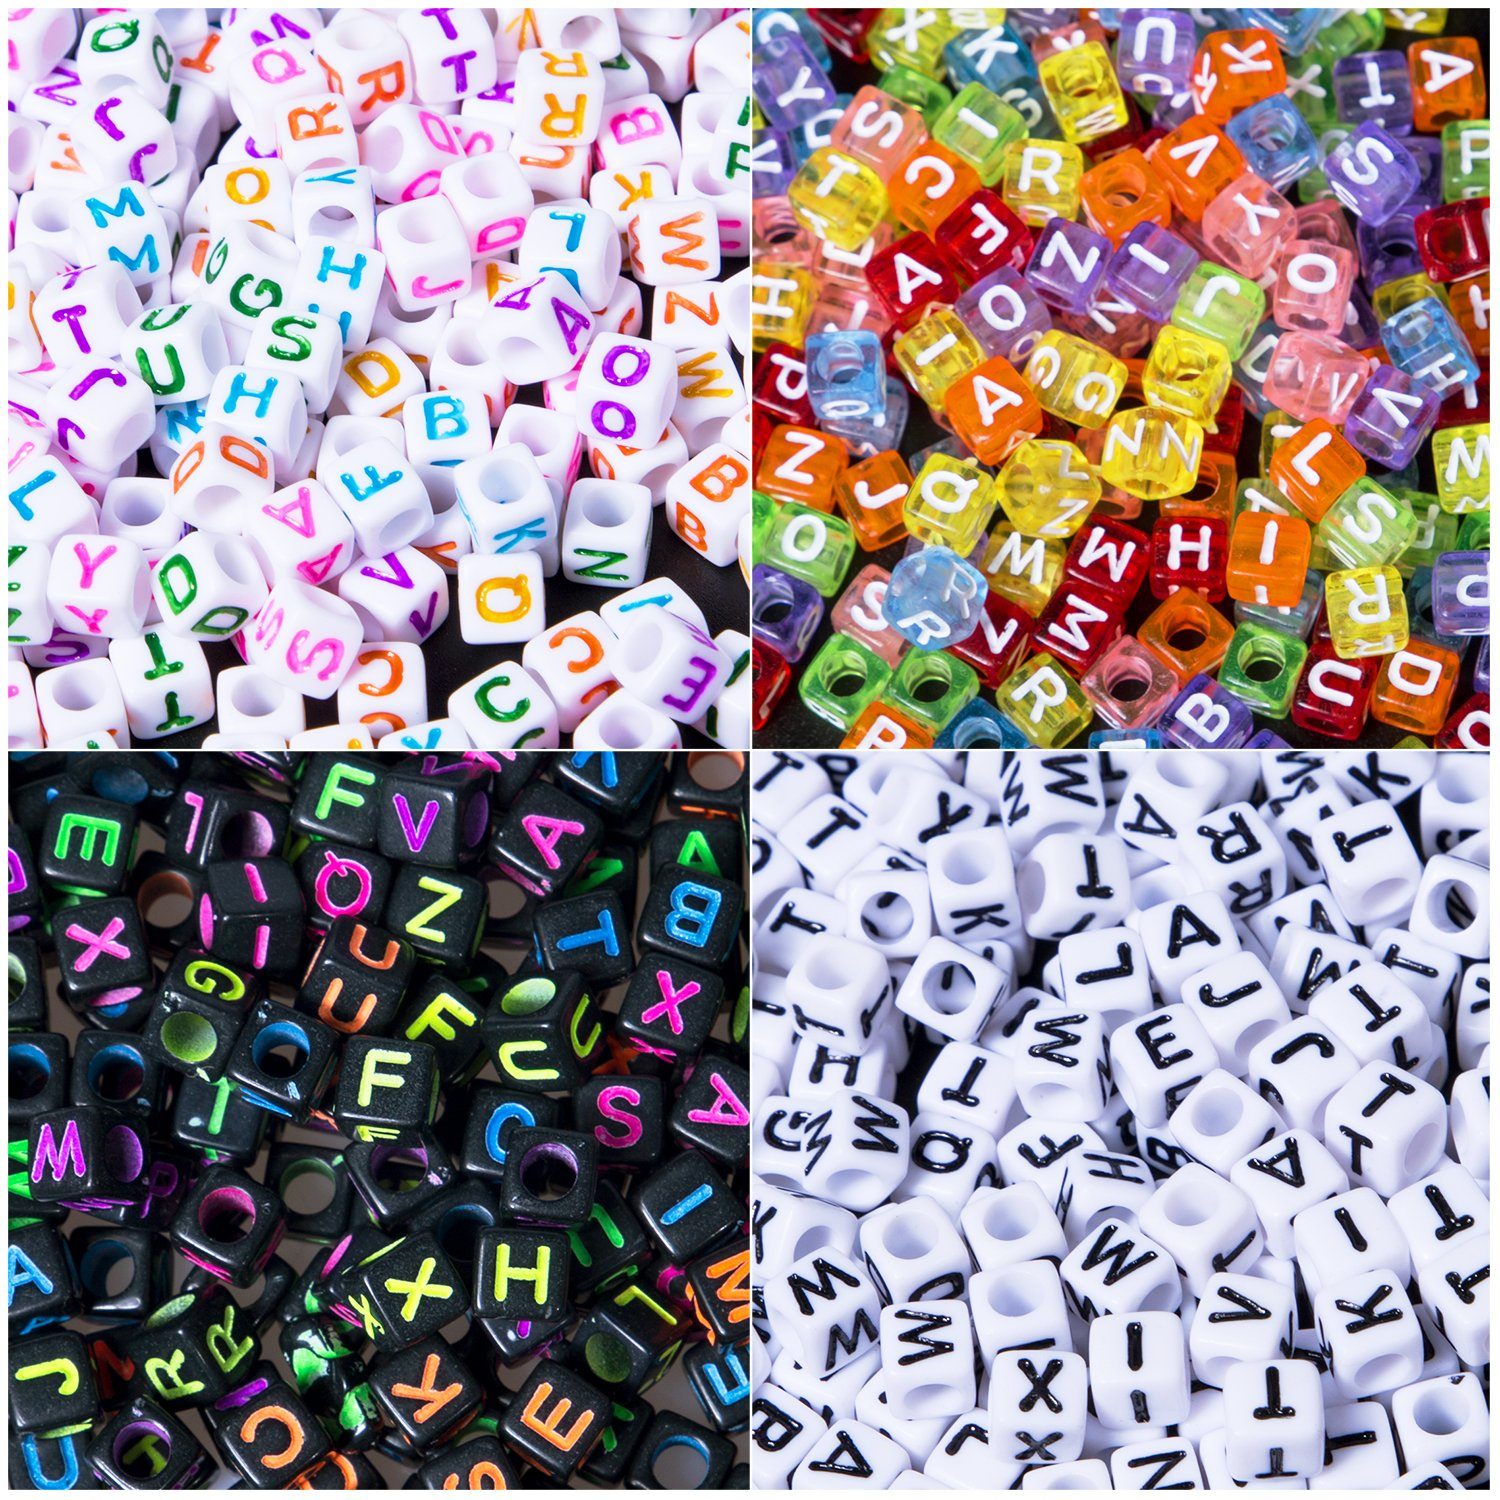 Korlon 800 Pieces Acrylic Alphabet Letter Beads, 4 Color Acrylic Alphabet Letter Kandi Beads for Jewellery Making, Bracelets, Necklace, Key Chains and Kids Jewelry CLN-078-1